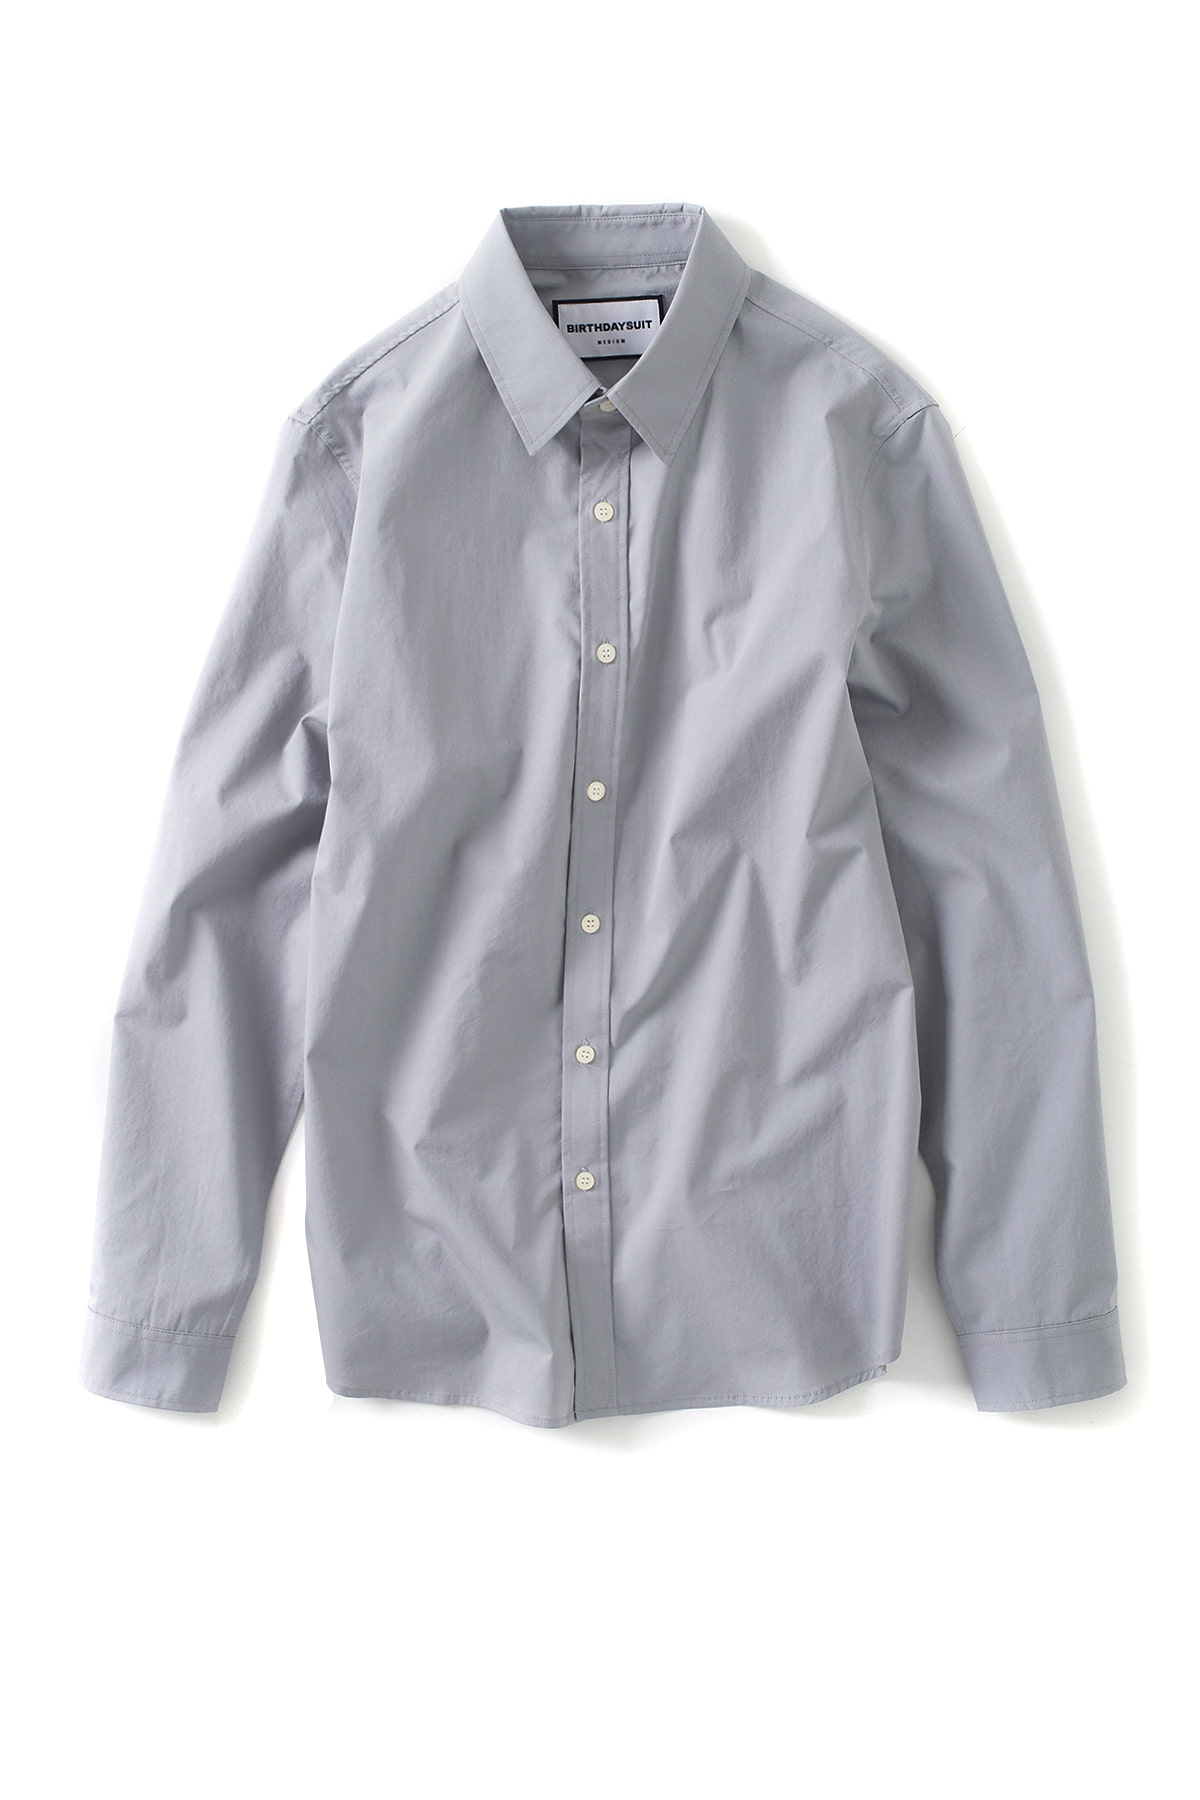 BIRTHDAYSUIT : Basic Shirt (Silver Grey)